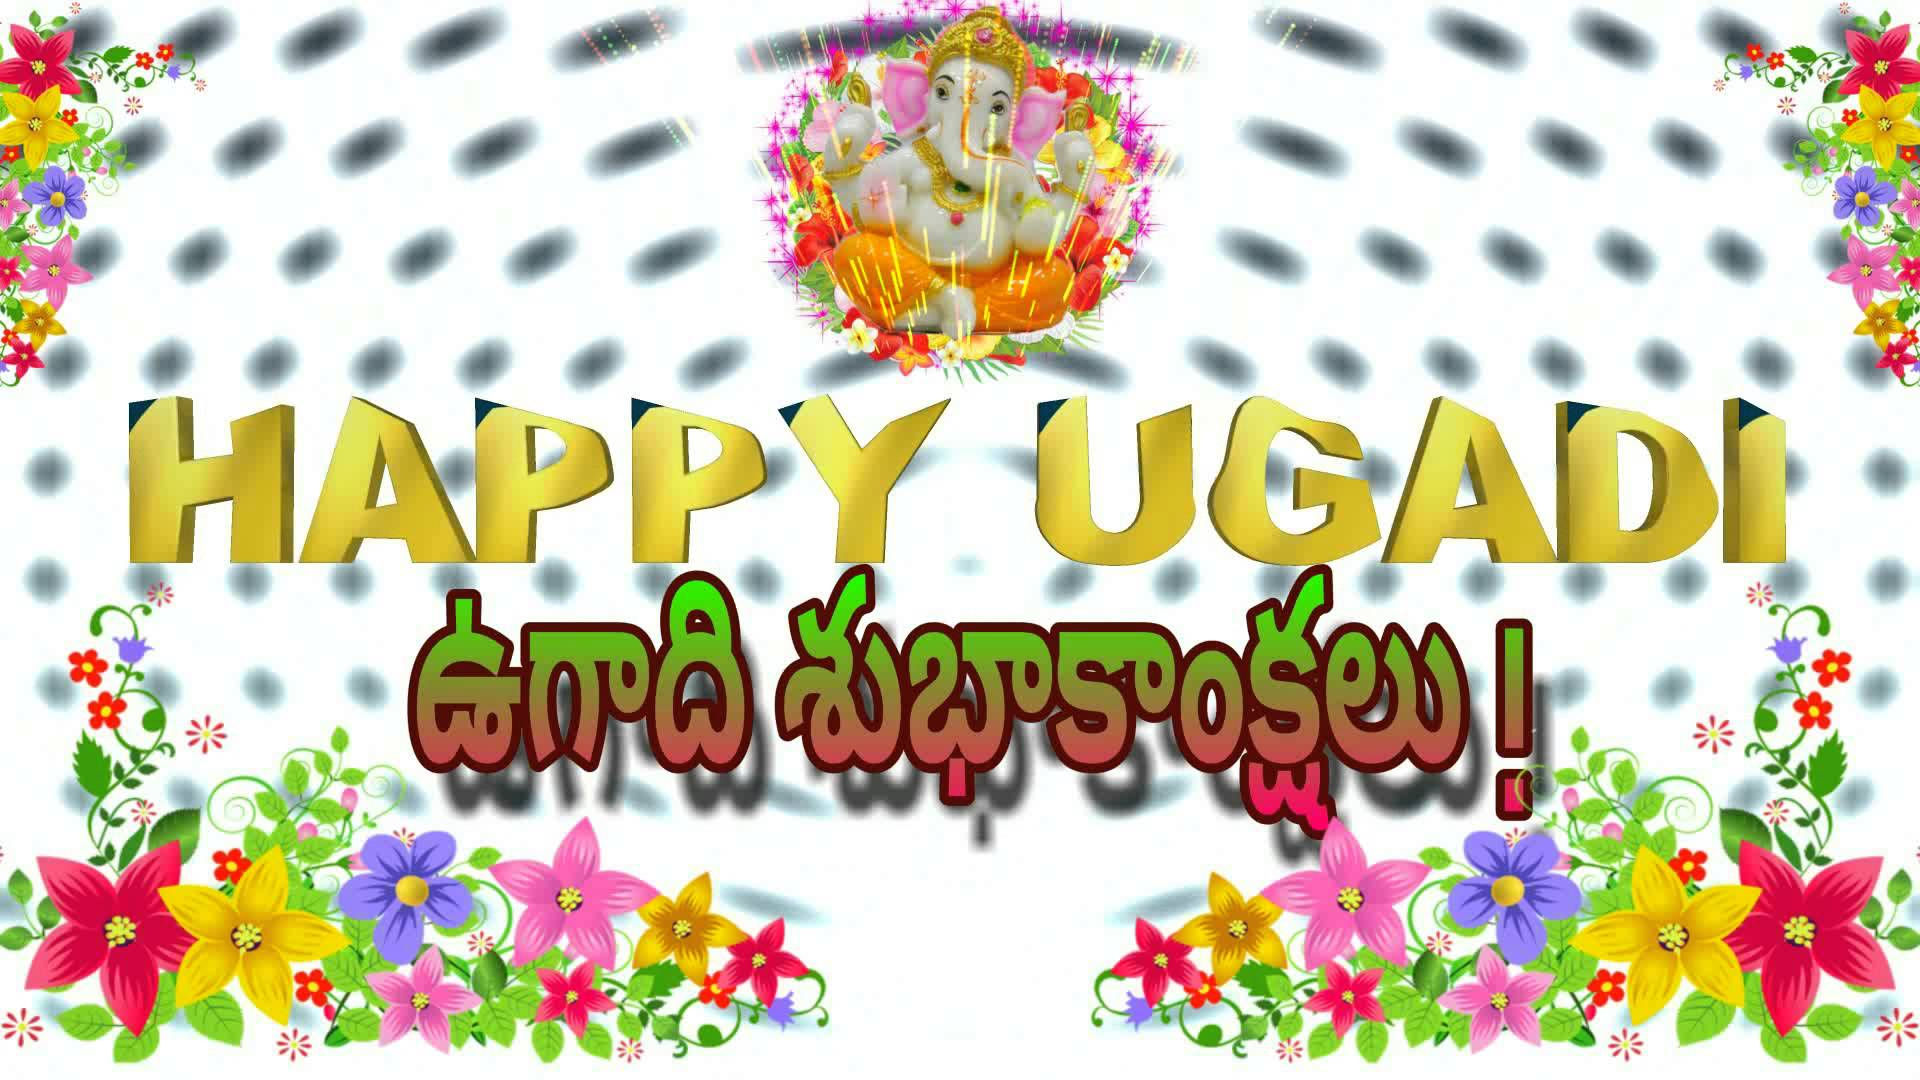 Happy ugadi images 2018 wishes quotes greetings sms messages happy ugadi 2018 images in telugu kanaada m4hsunfo